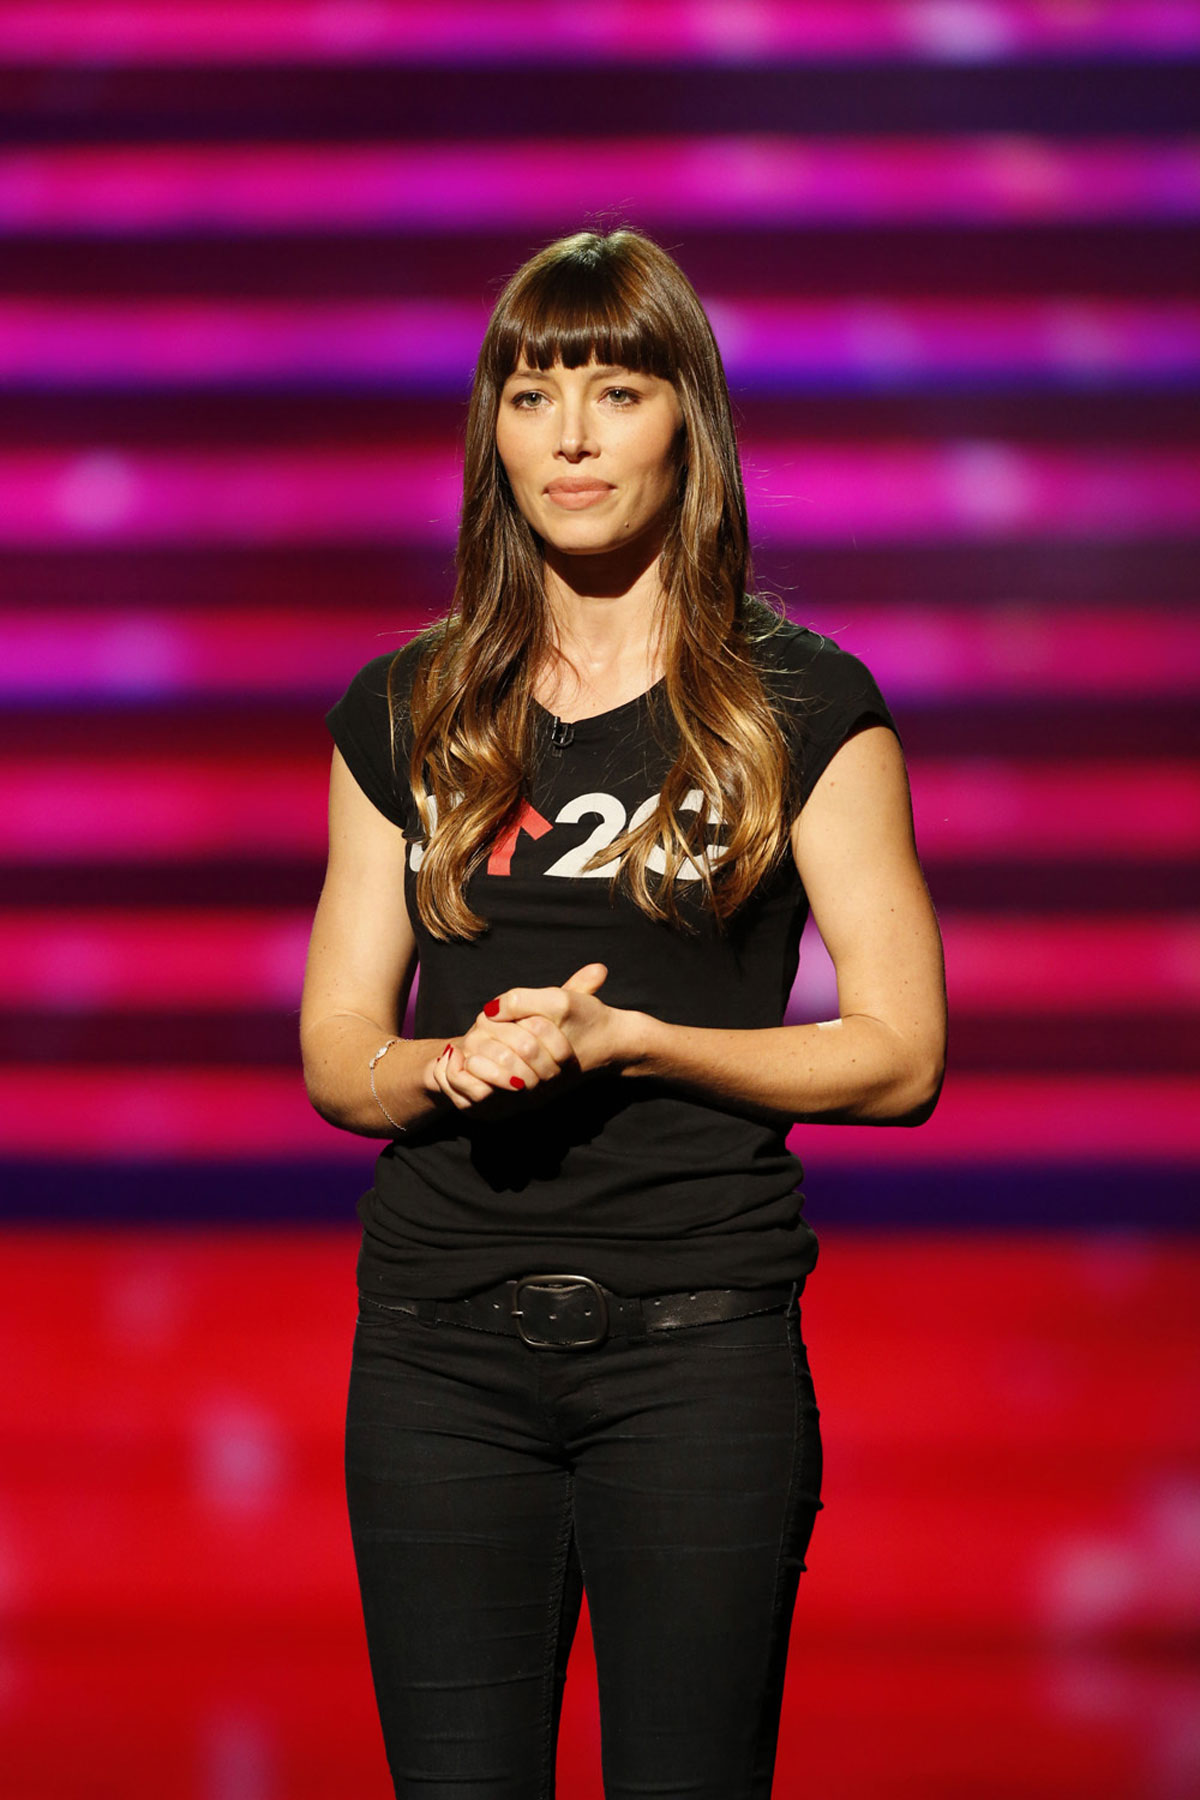 JESSICA BIEL At The Stand Up To Cancer Event In Los